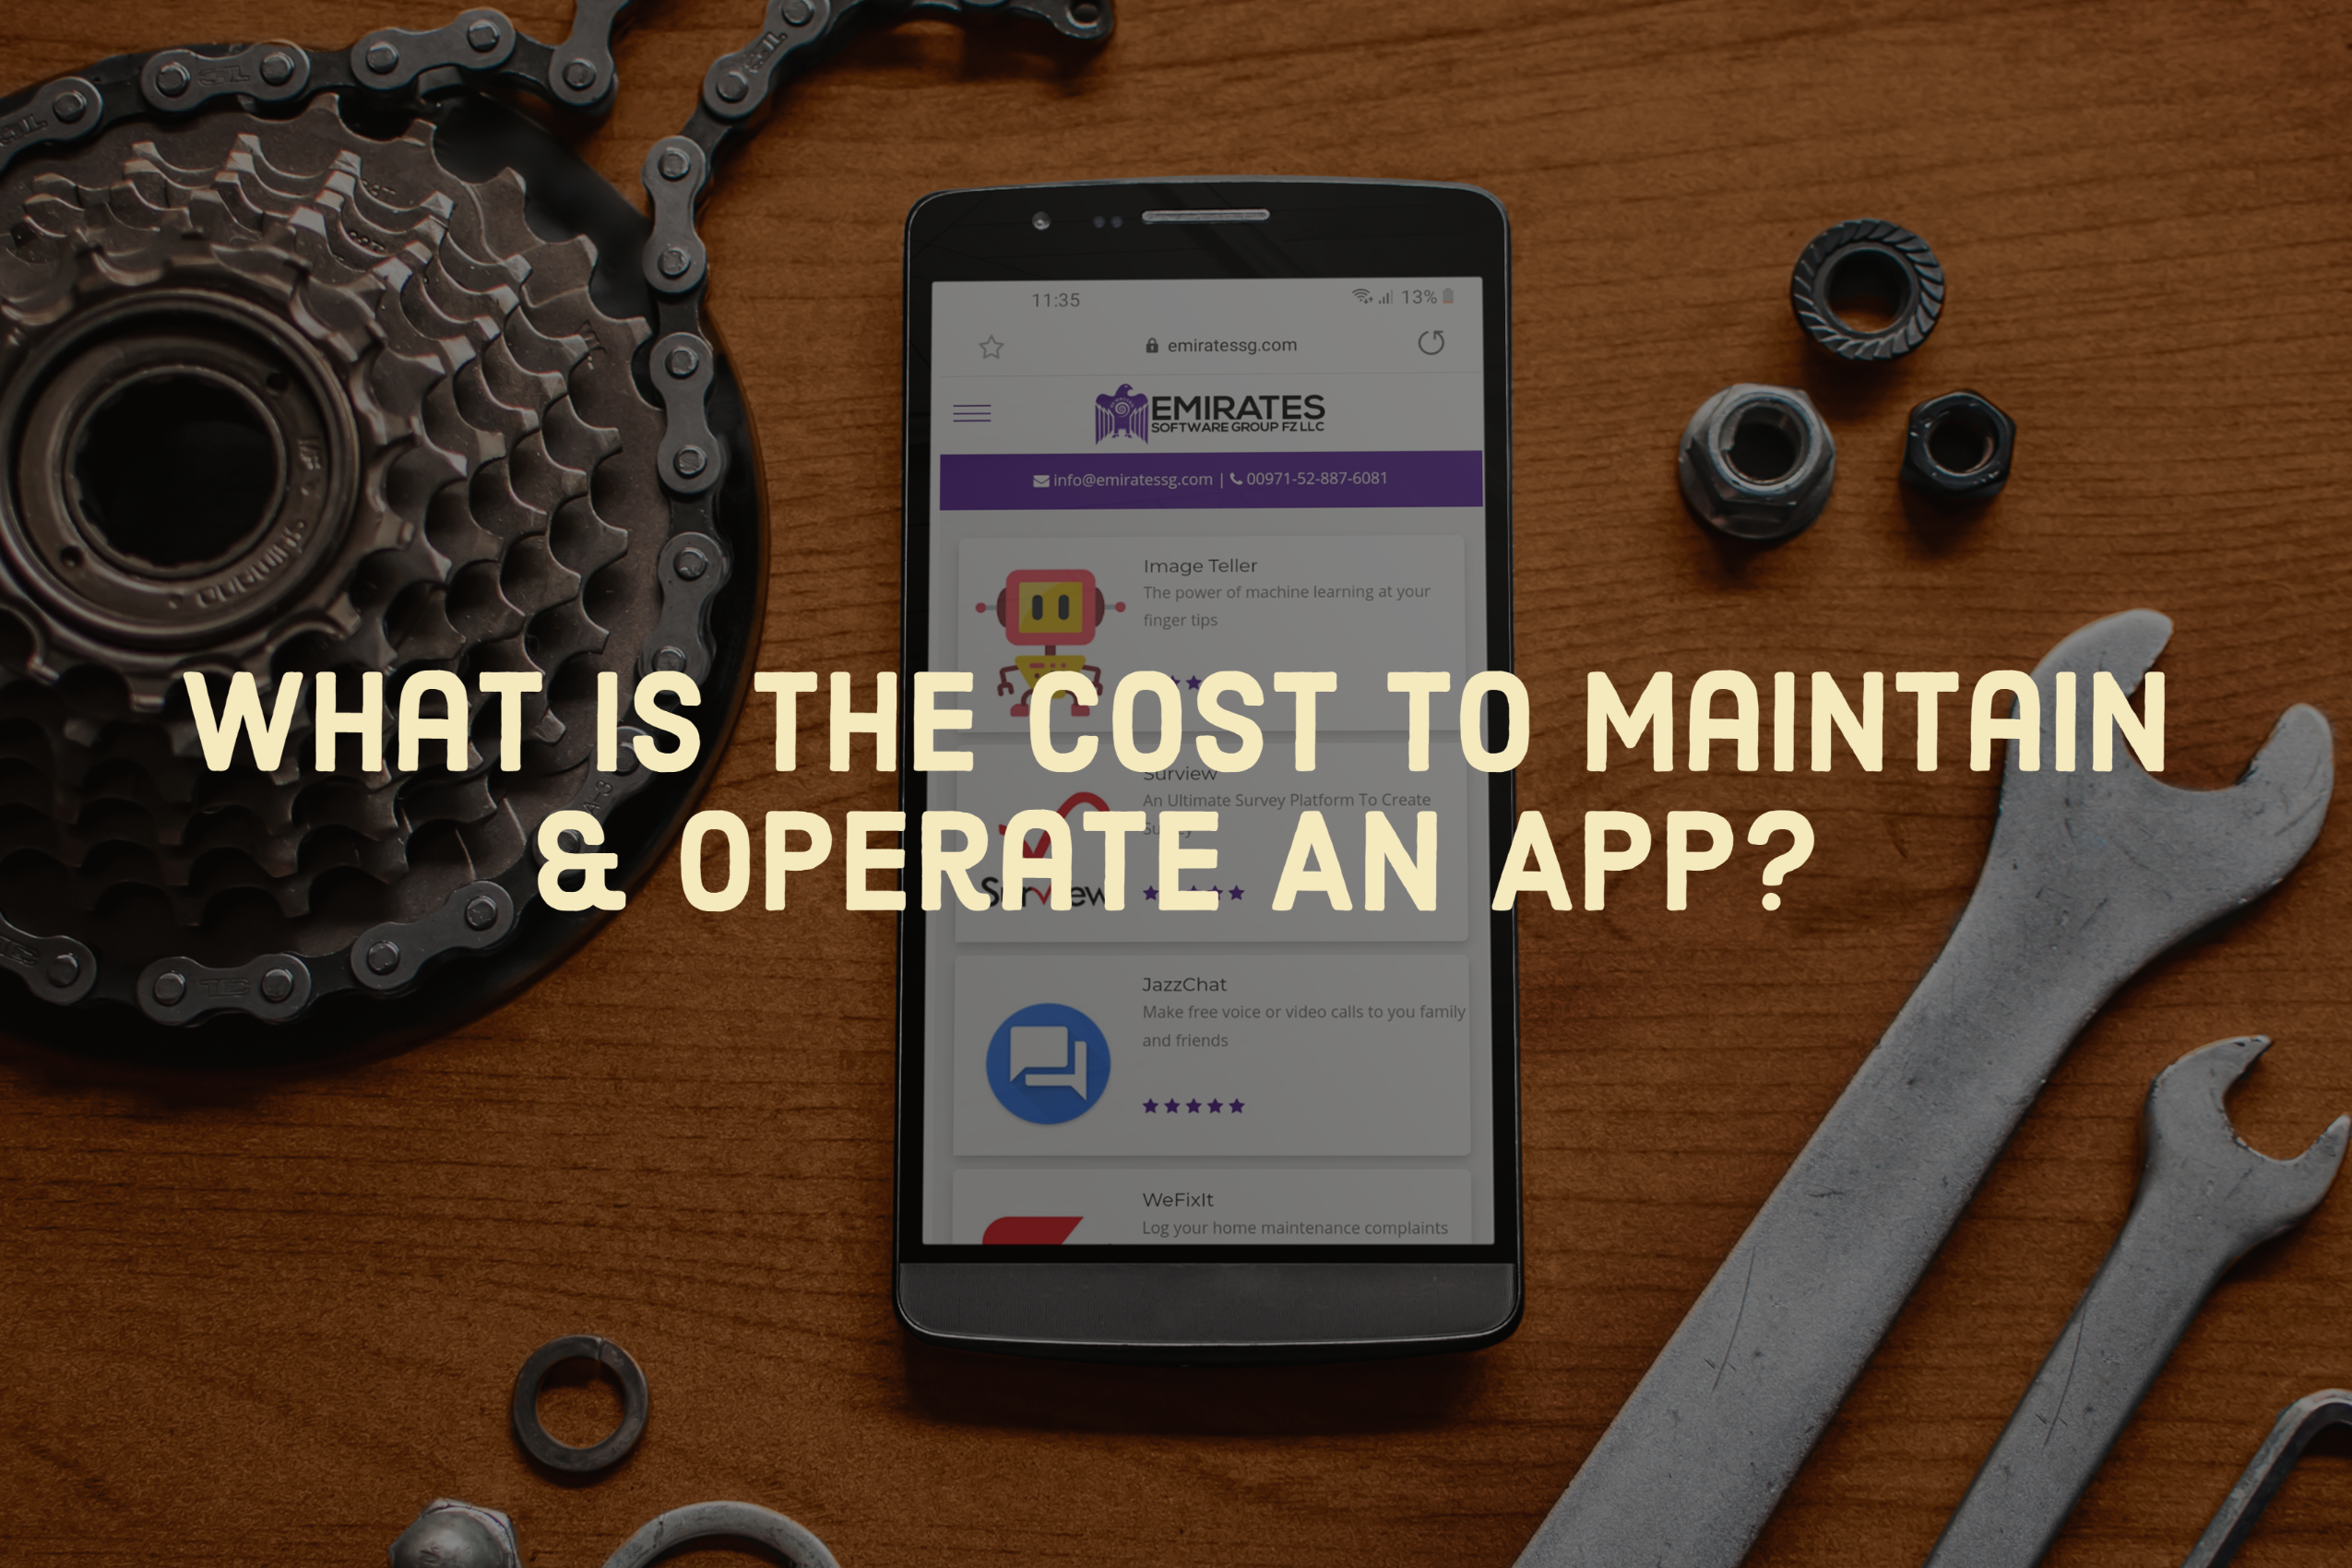 What is the cost to maintain and operate an app